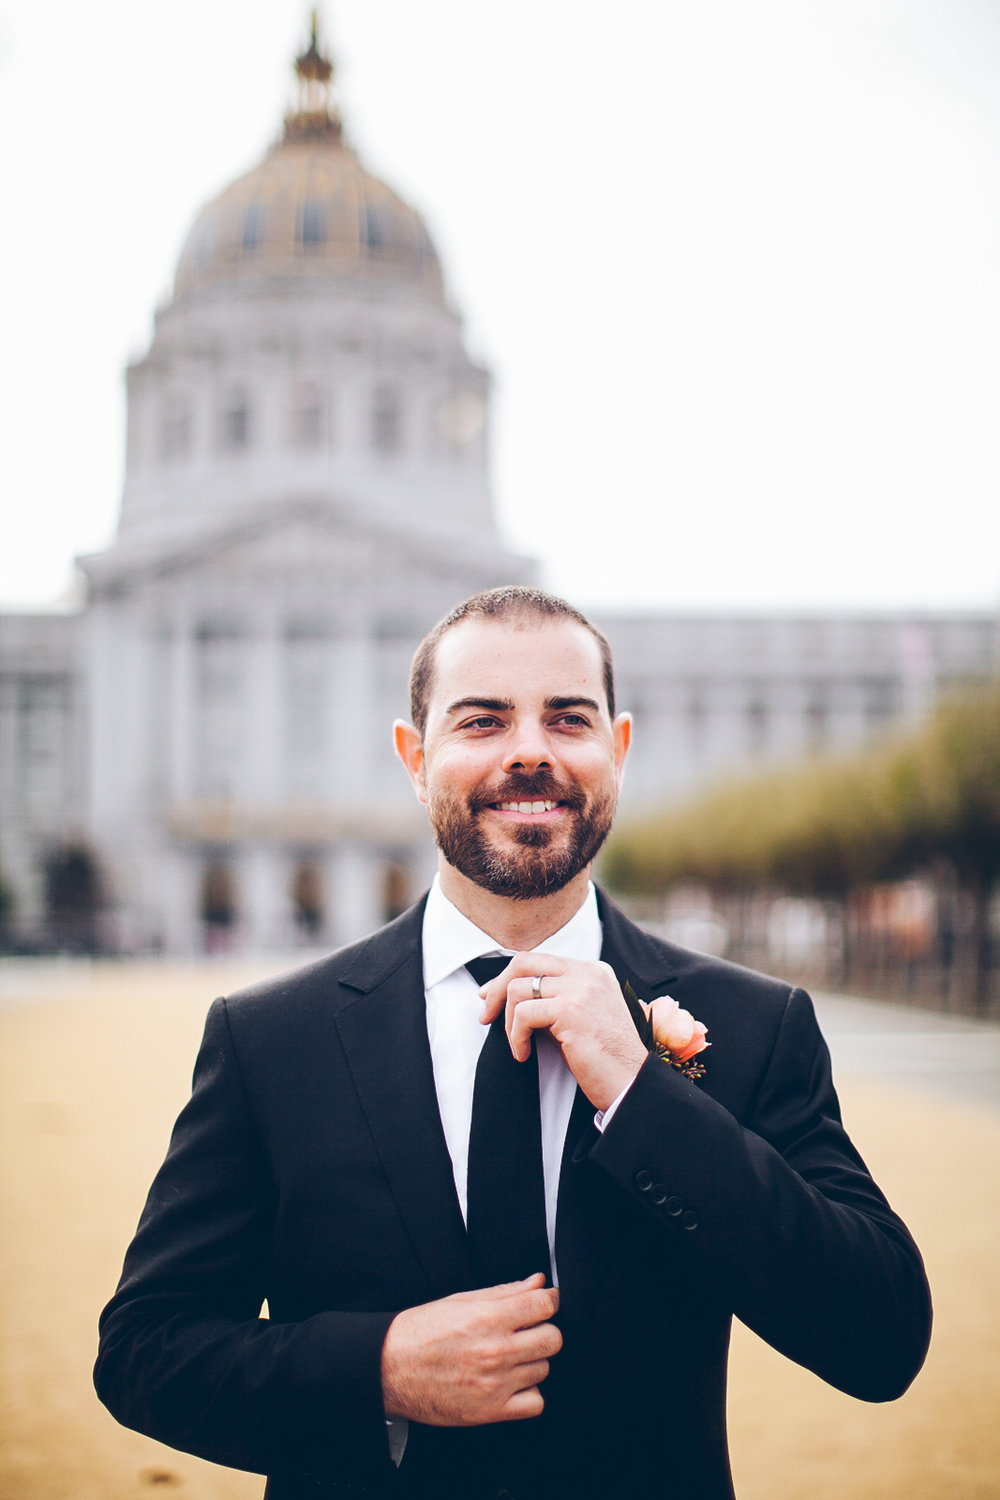 San_francisco_city_hall_wedding_photography_meegan_travis_ebony_siovhan_bokeh_photography_67.jpg